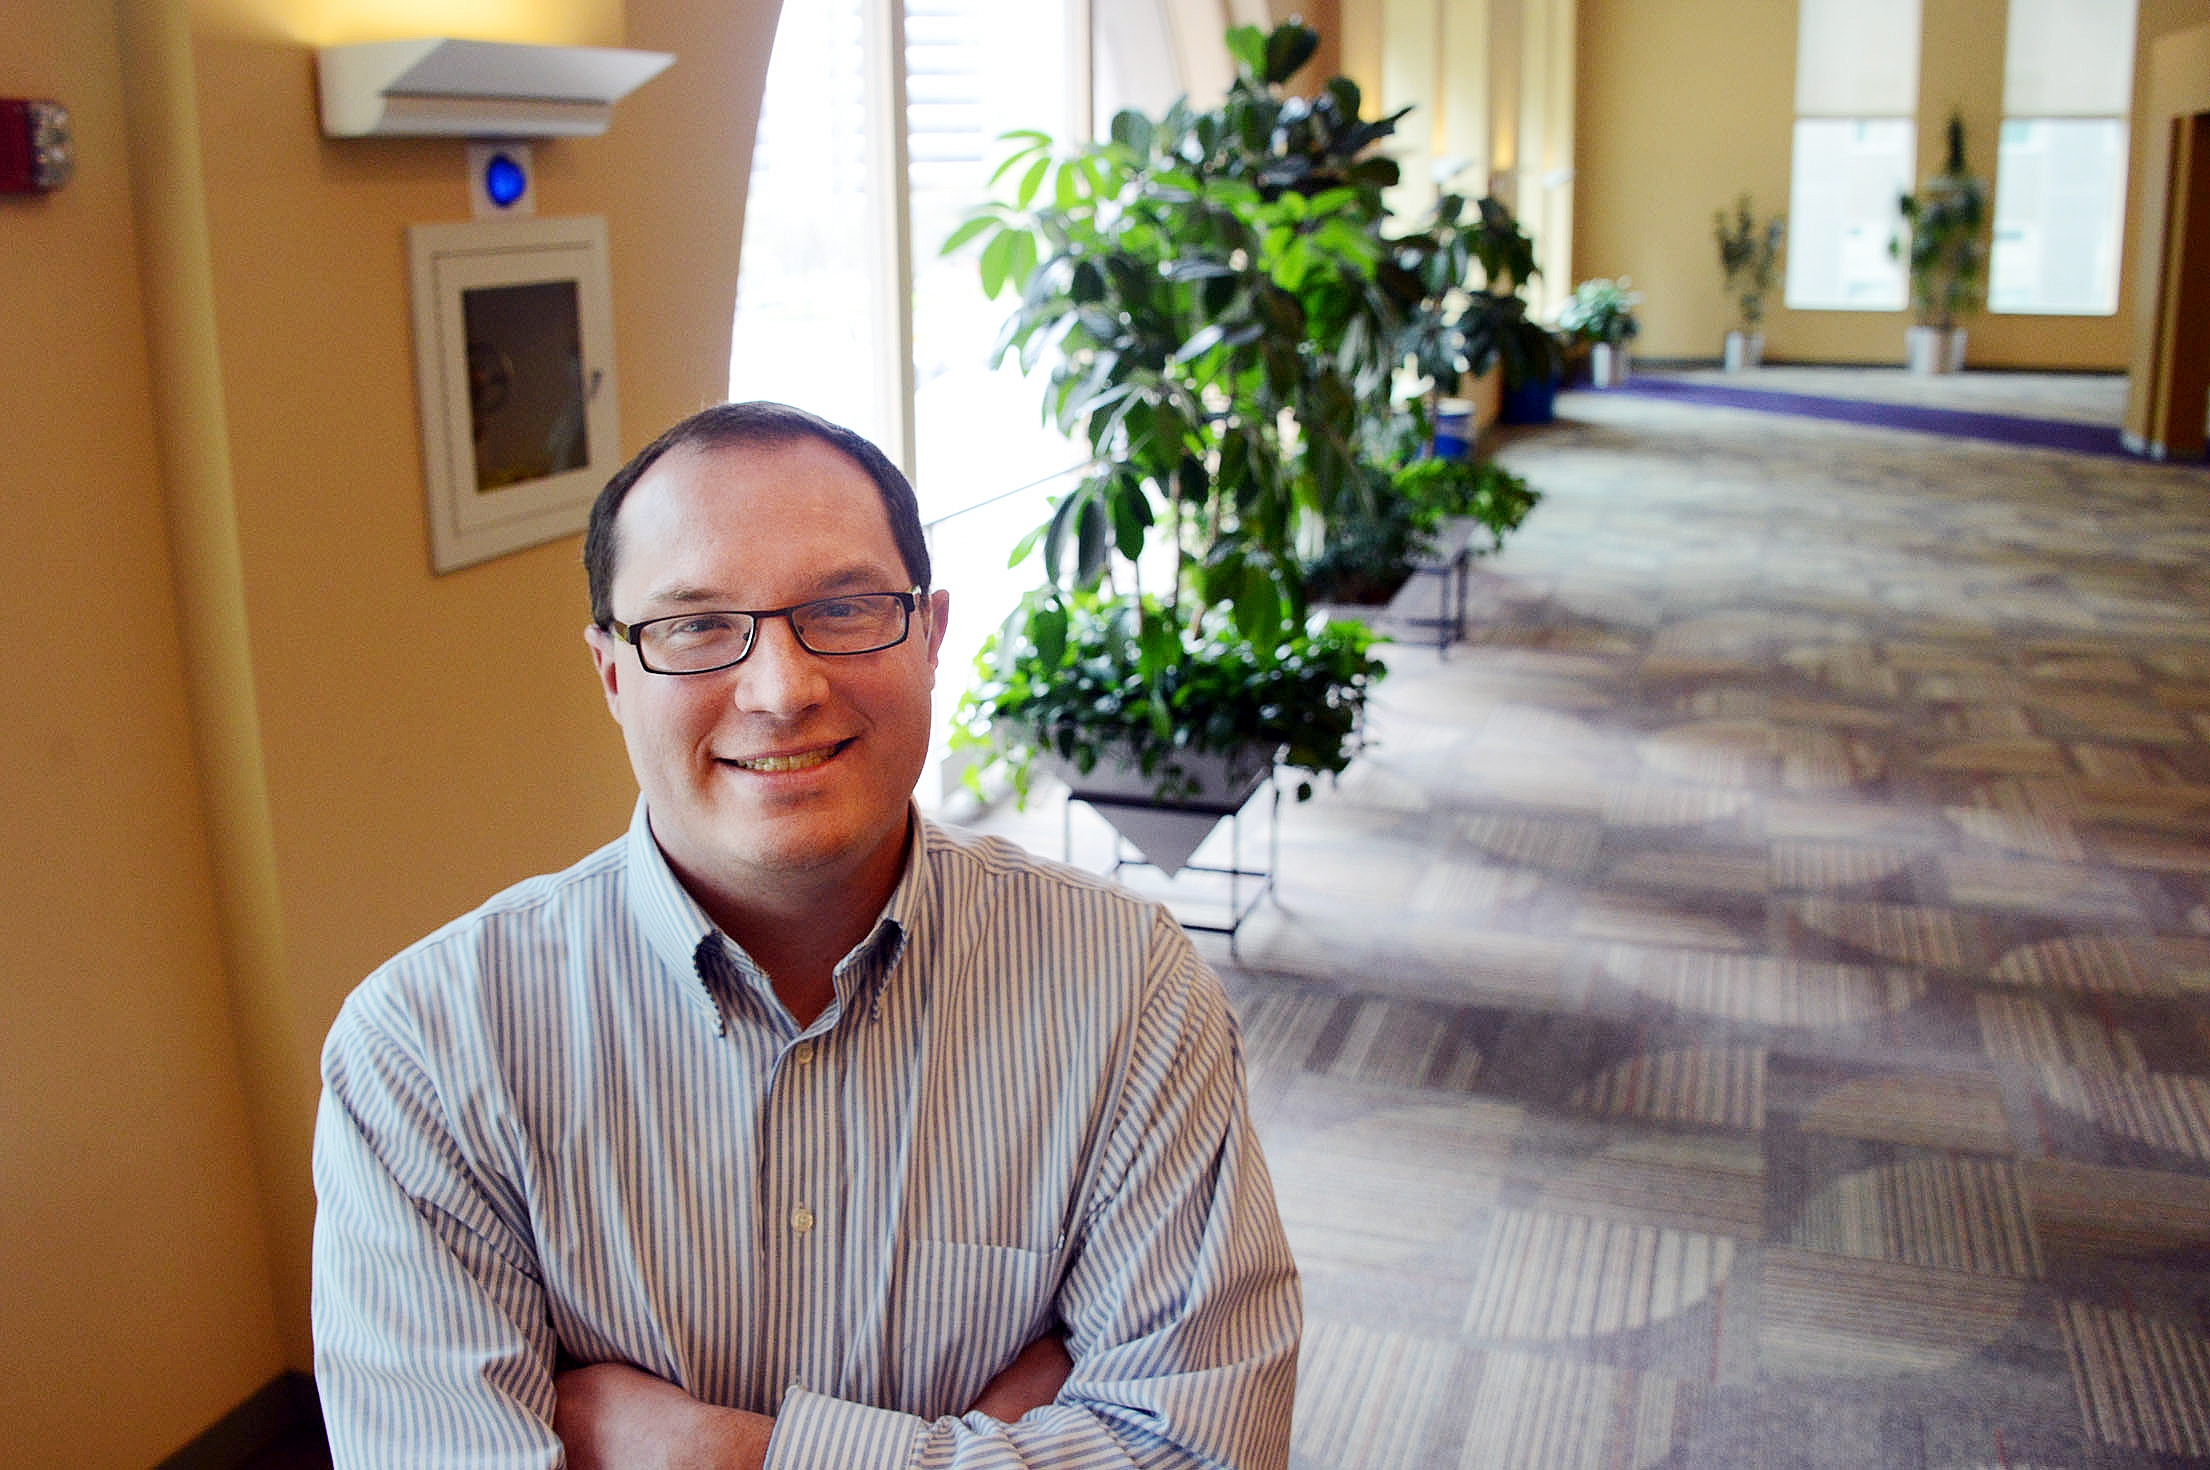 Aaron Bosley, who is deaf, works for Highmark, which employs more than 100 disabled people.